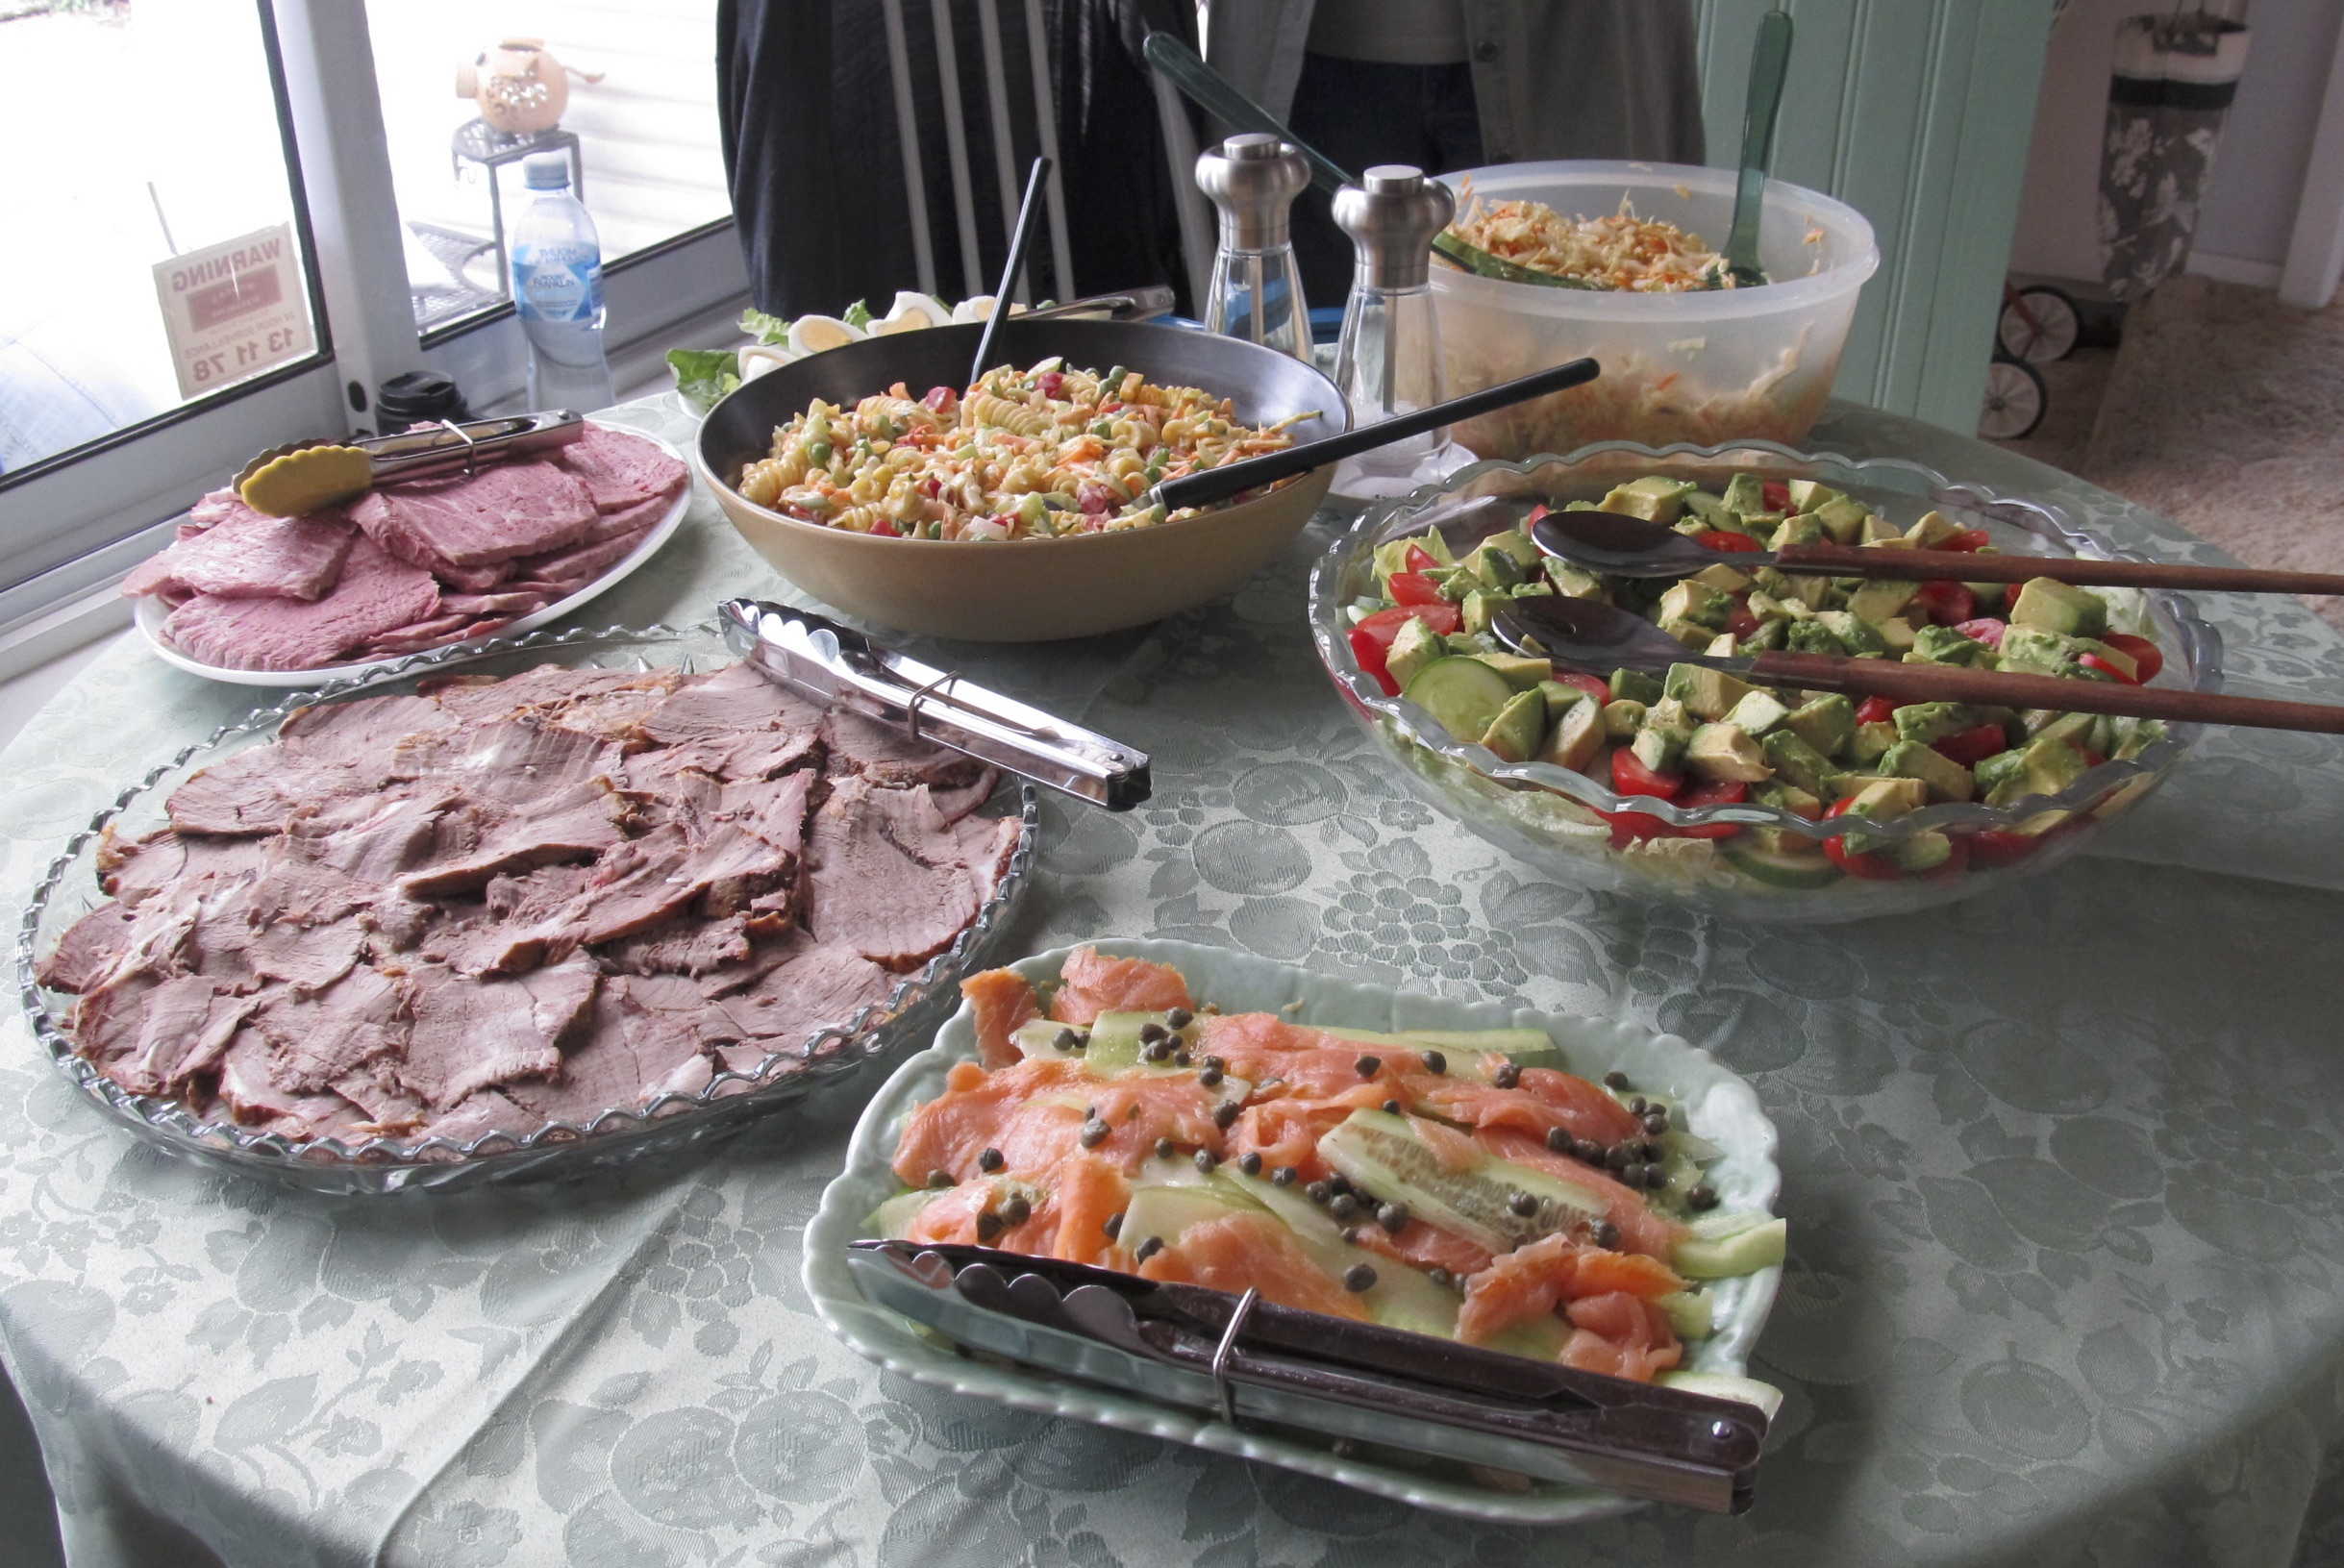 Aunty Edna and Aunty Kathy KNOW how to put on a a Hogan feast. The main spread…. SPOILT!!